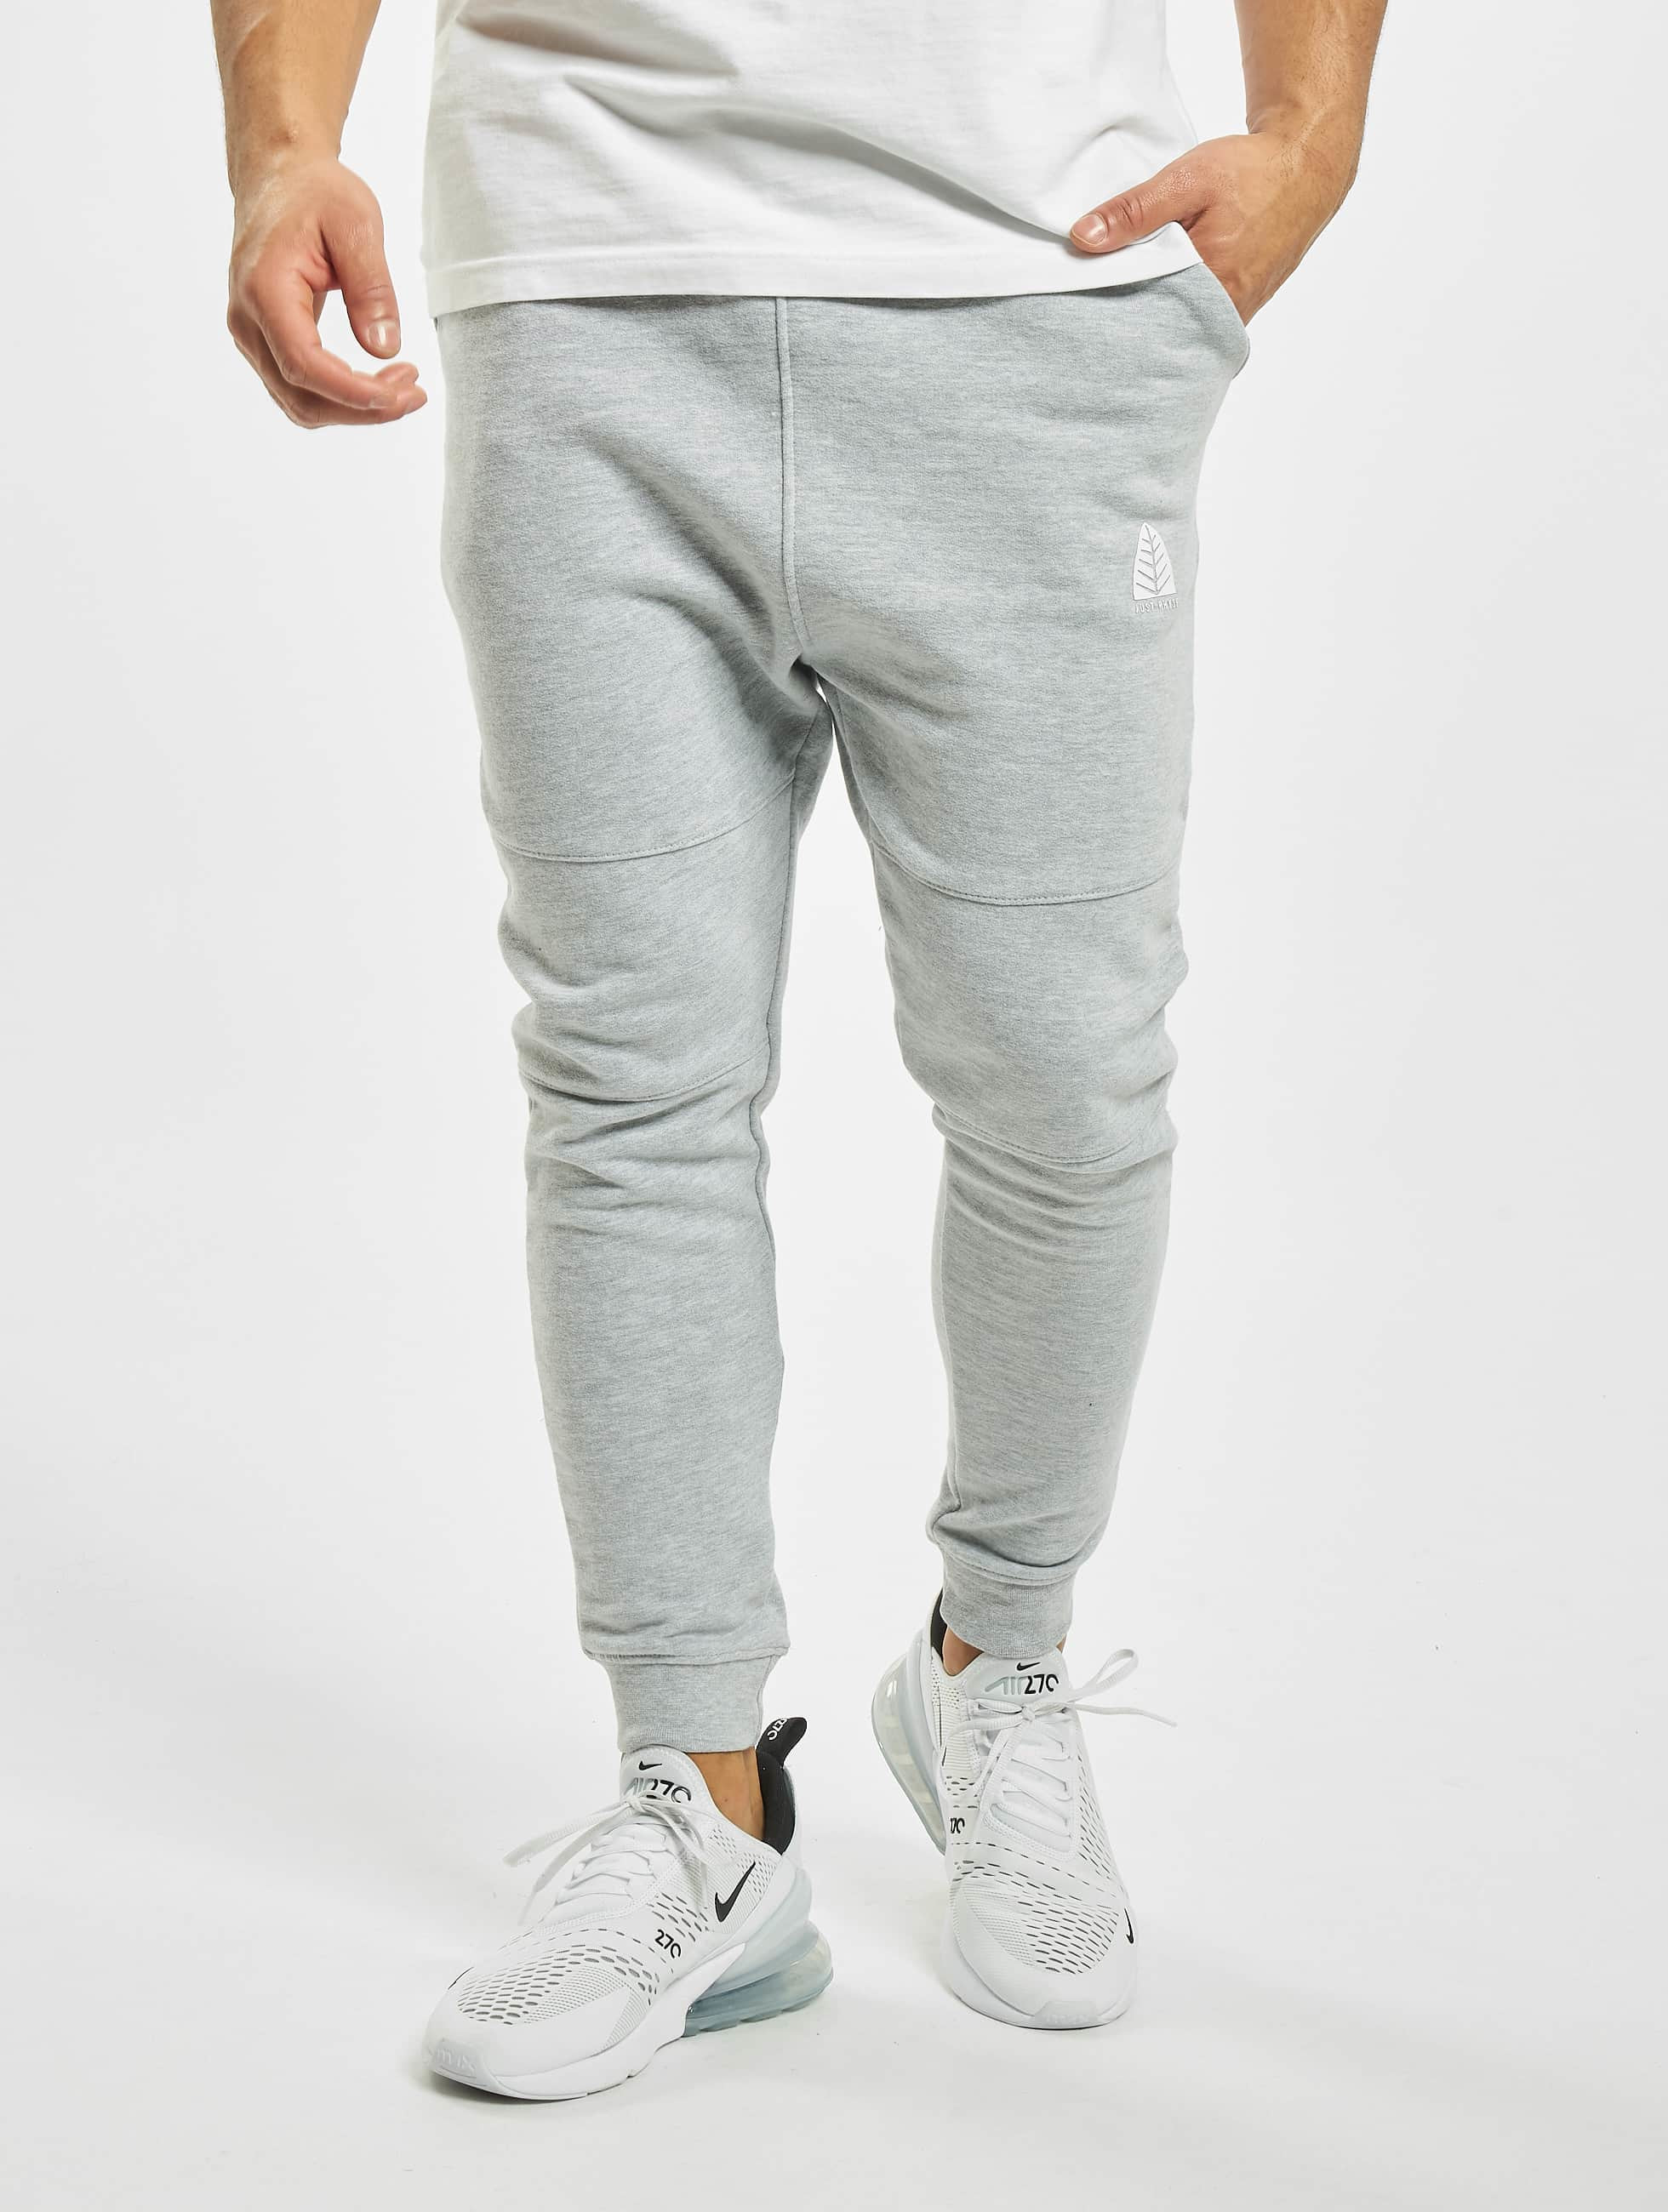 Just Rhyse / Sweat Pant Rainrock Sweat in grey L